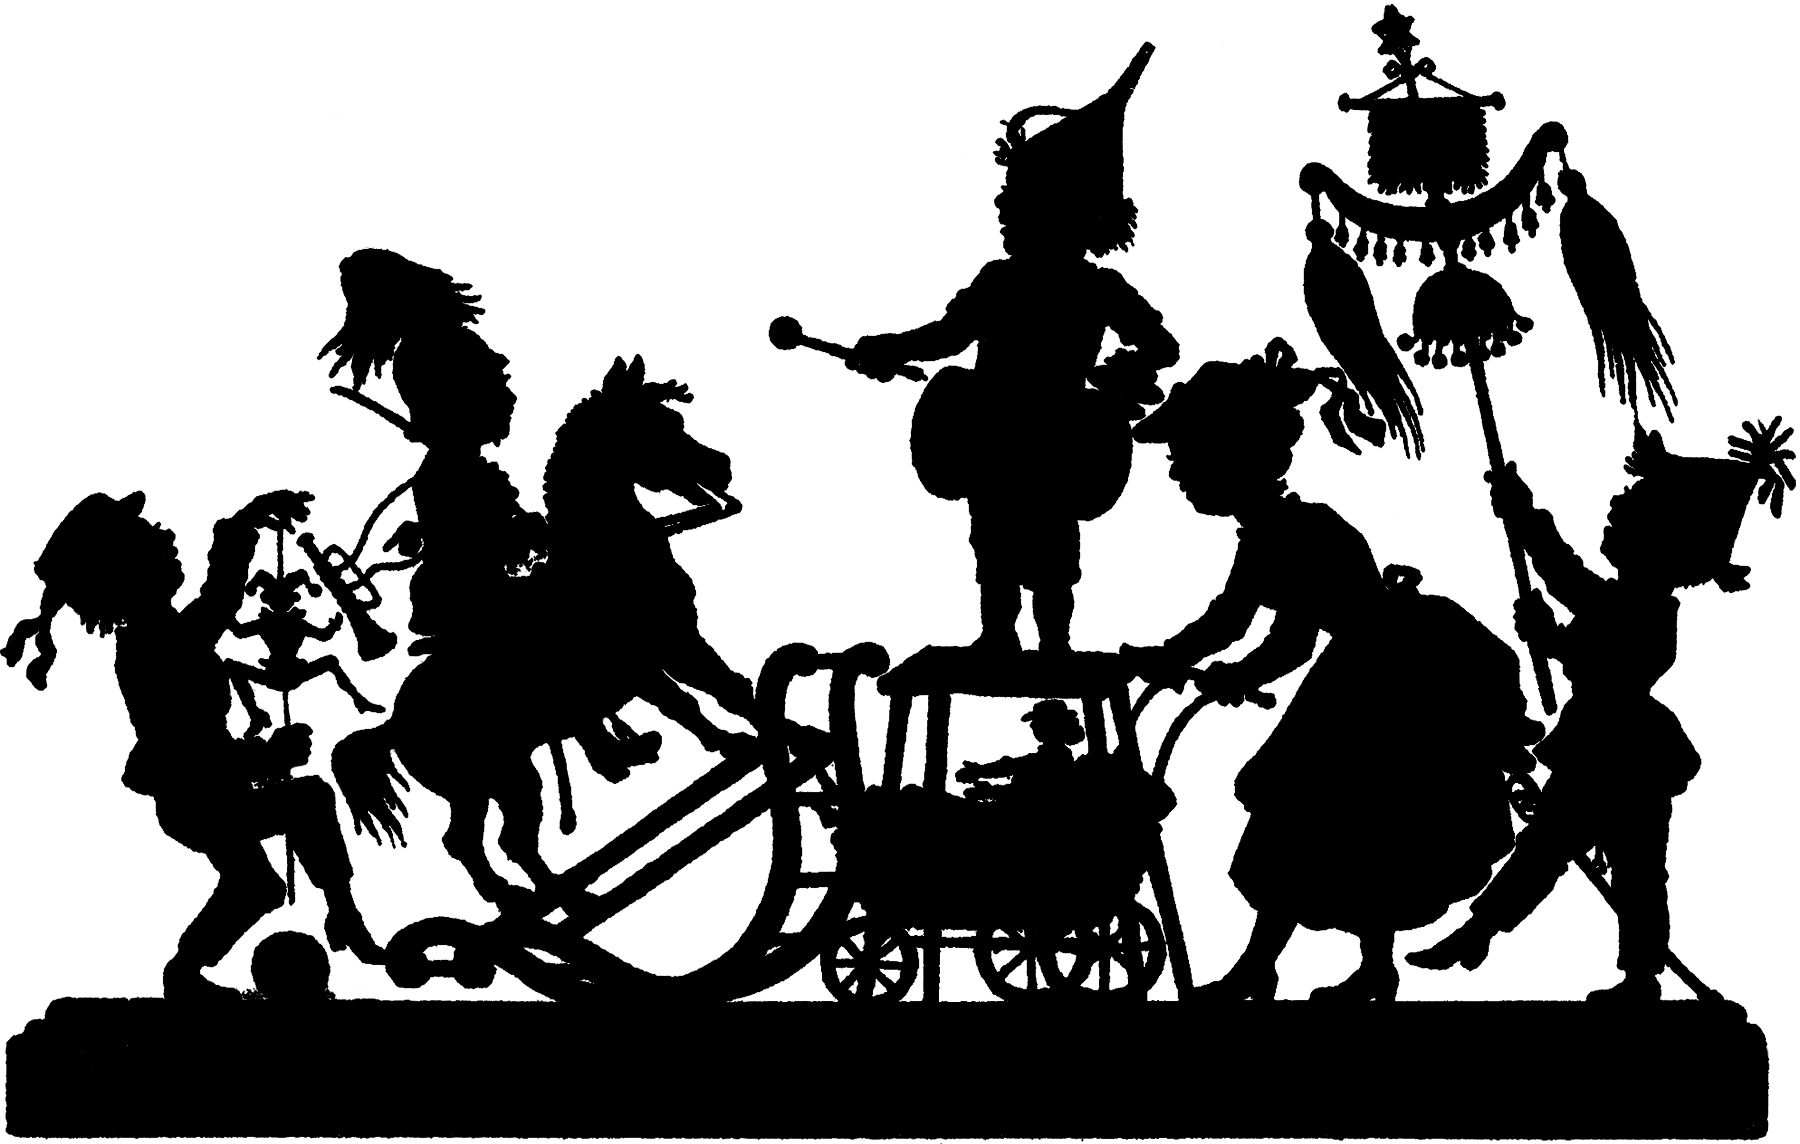 Free Silhouette Parade Image - Darling! - The Graphics Fairy